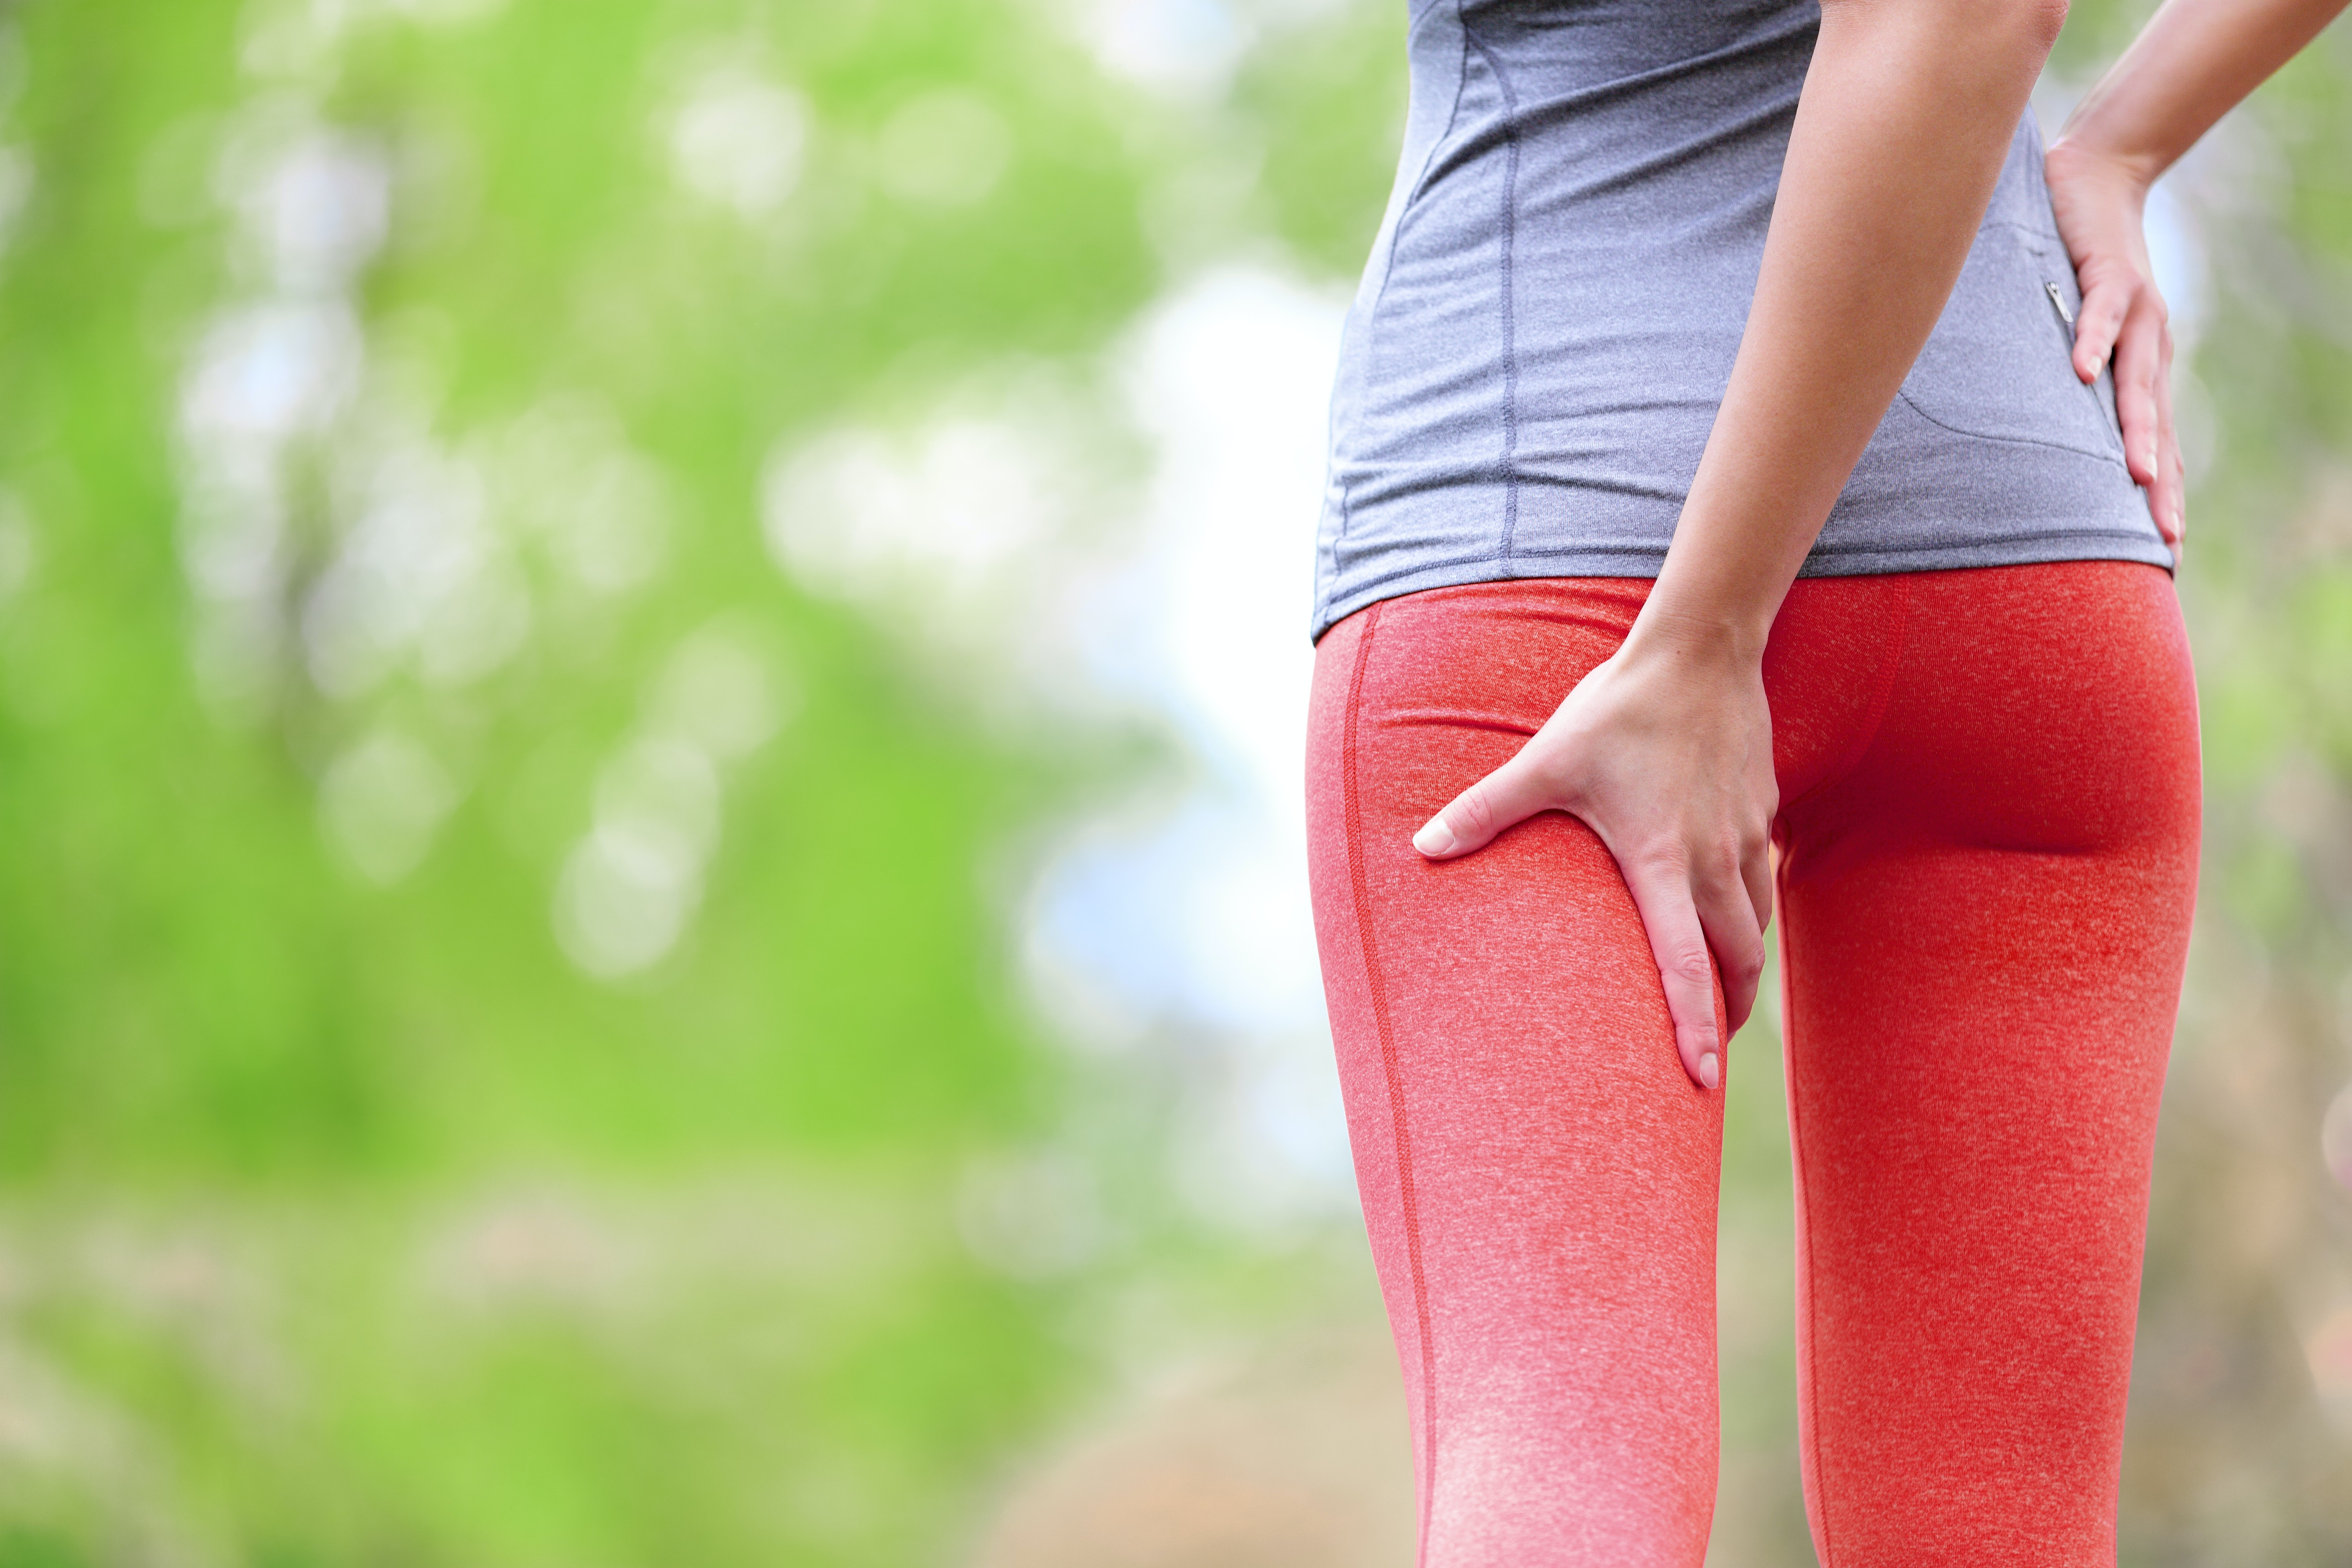 An image depicting a person suffering from upper leg pain symptoms